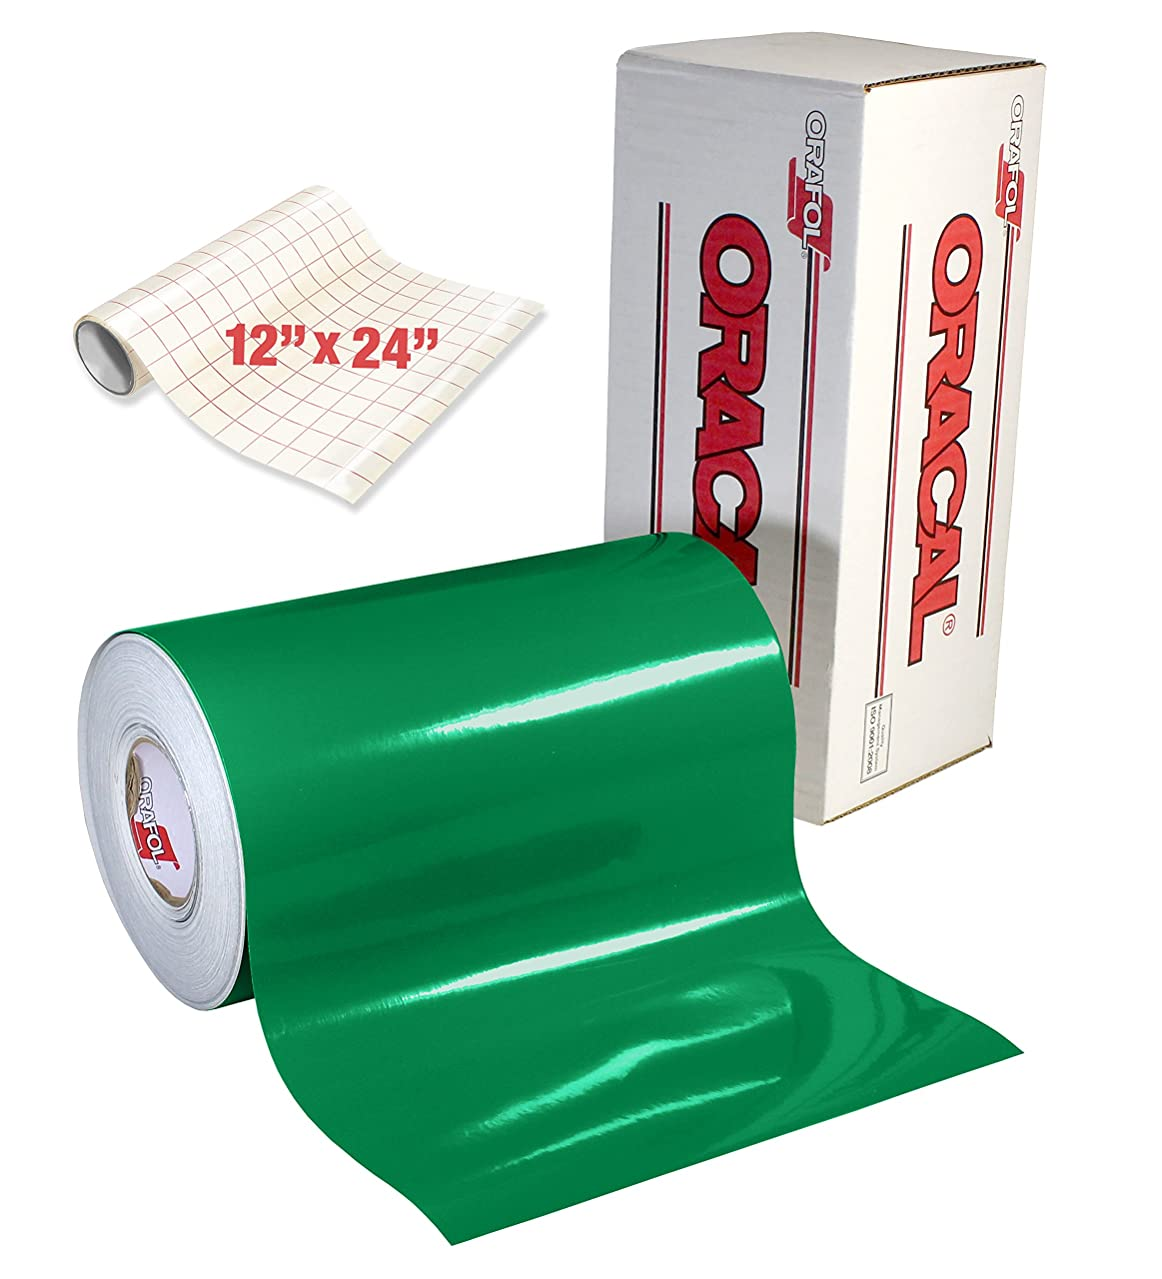 ORACAL 651 Gloss Green Adhesive Craft Vinyl for Cameo, Cricut & Silhouette Including Free Roll of Clear Transfer Paper (50ft x 12